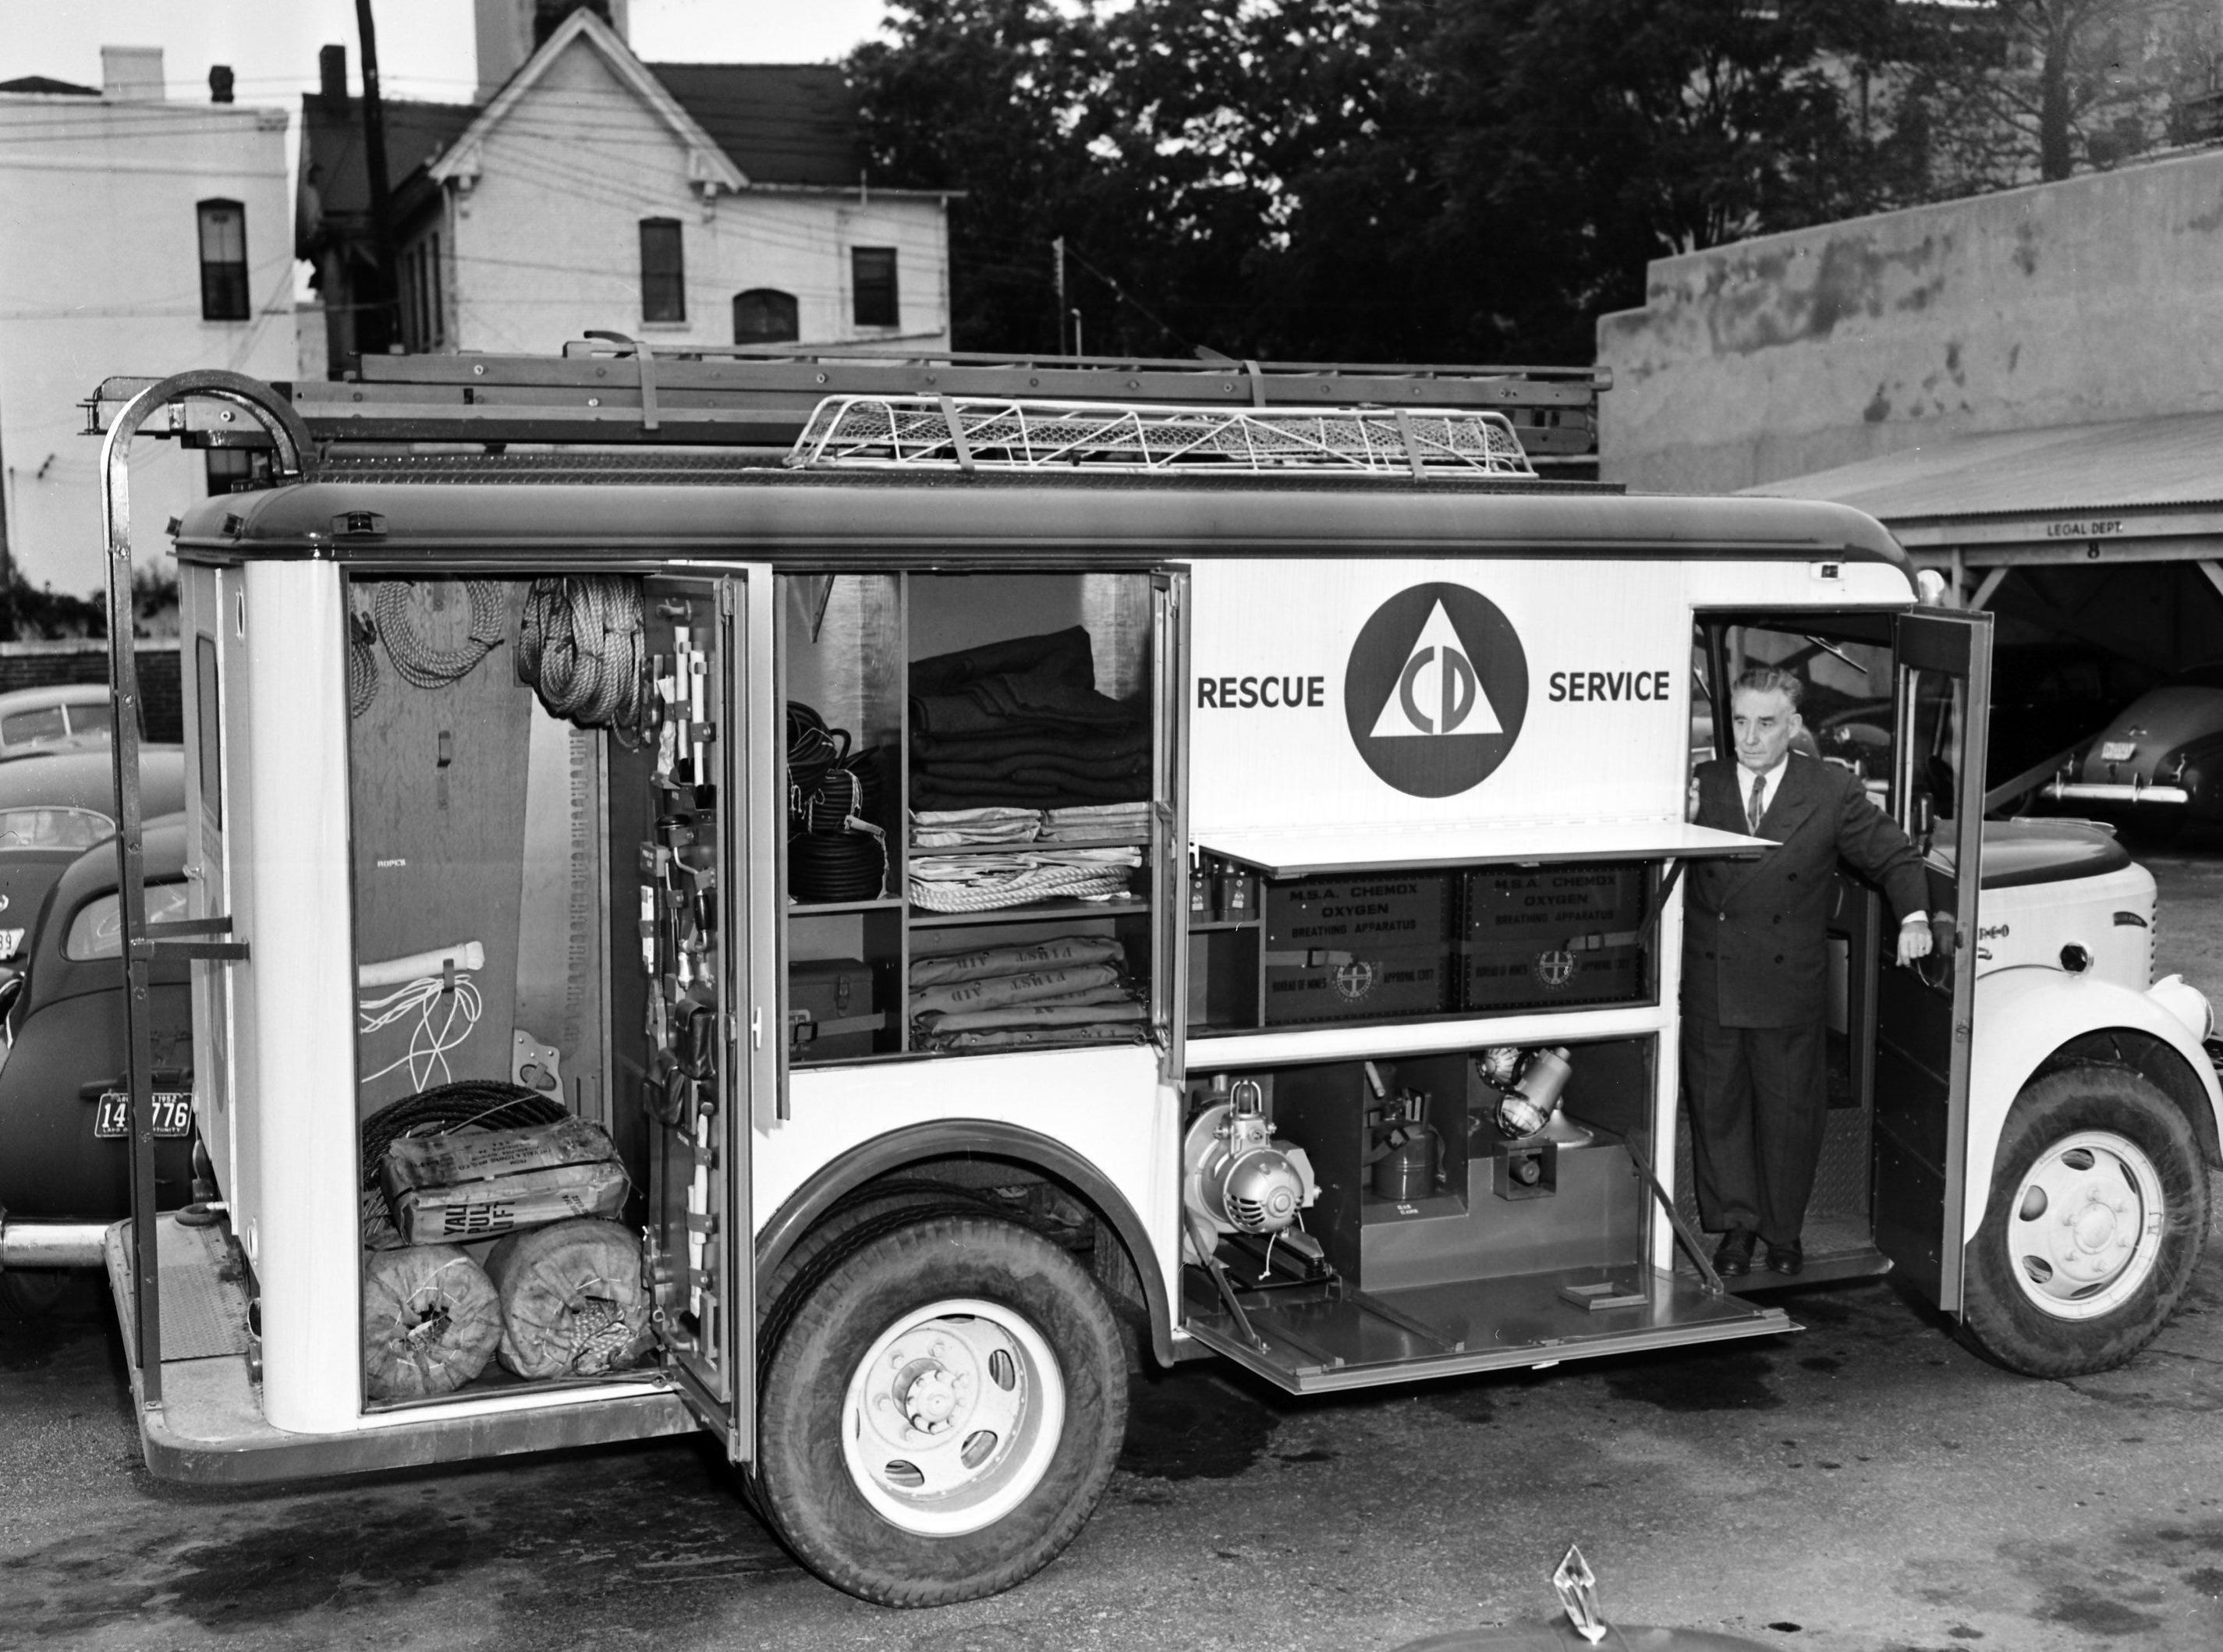 The first of two civil defense rescue service trucks was delivered in May 1953 to LTC John F. Somers, deputy director of the Memphis-Shelby County Civil Defense Commission. Regarded as the last word in rescue vehicles, the truck contains more than 300 pieces of rescue equipment. It is a combination of a fire truck, an ambulance and a utility company trouble shooter. It weighs 10 tons and has a top speed of 55 miles an hour.